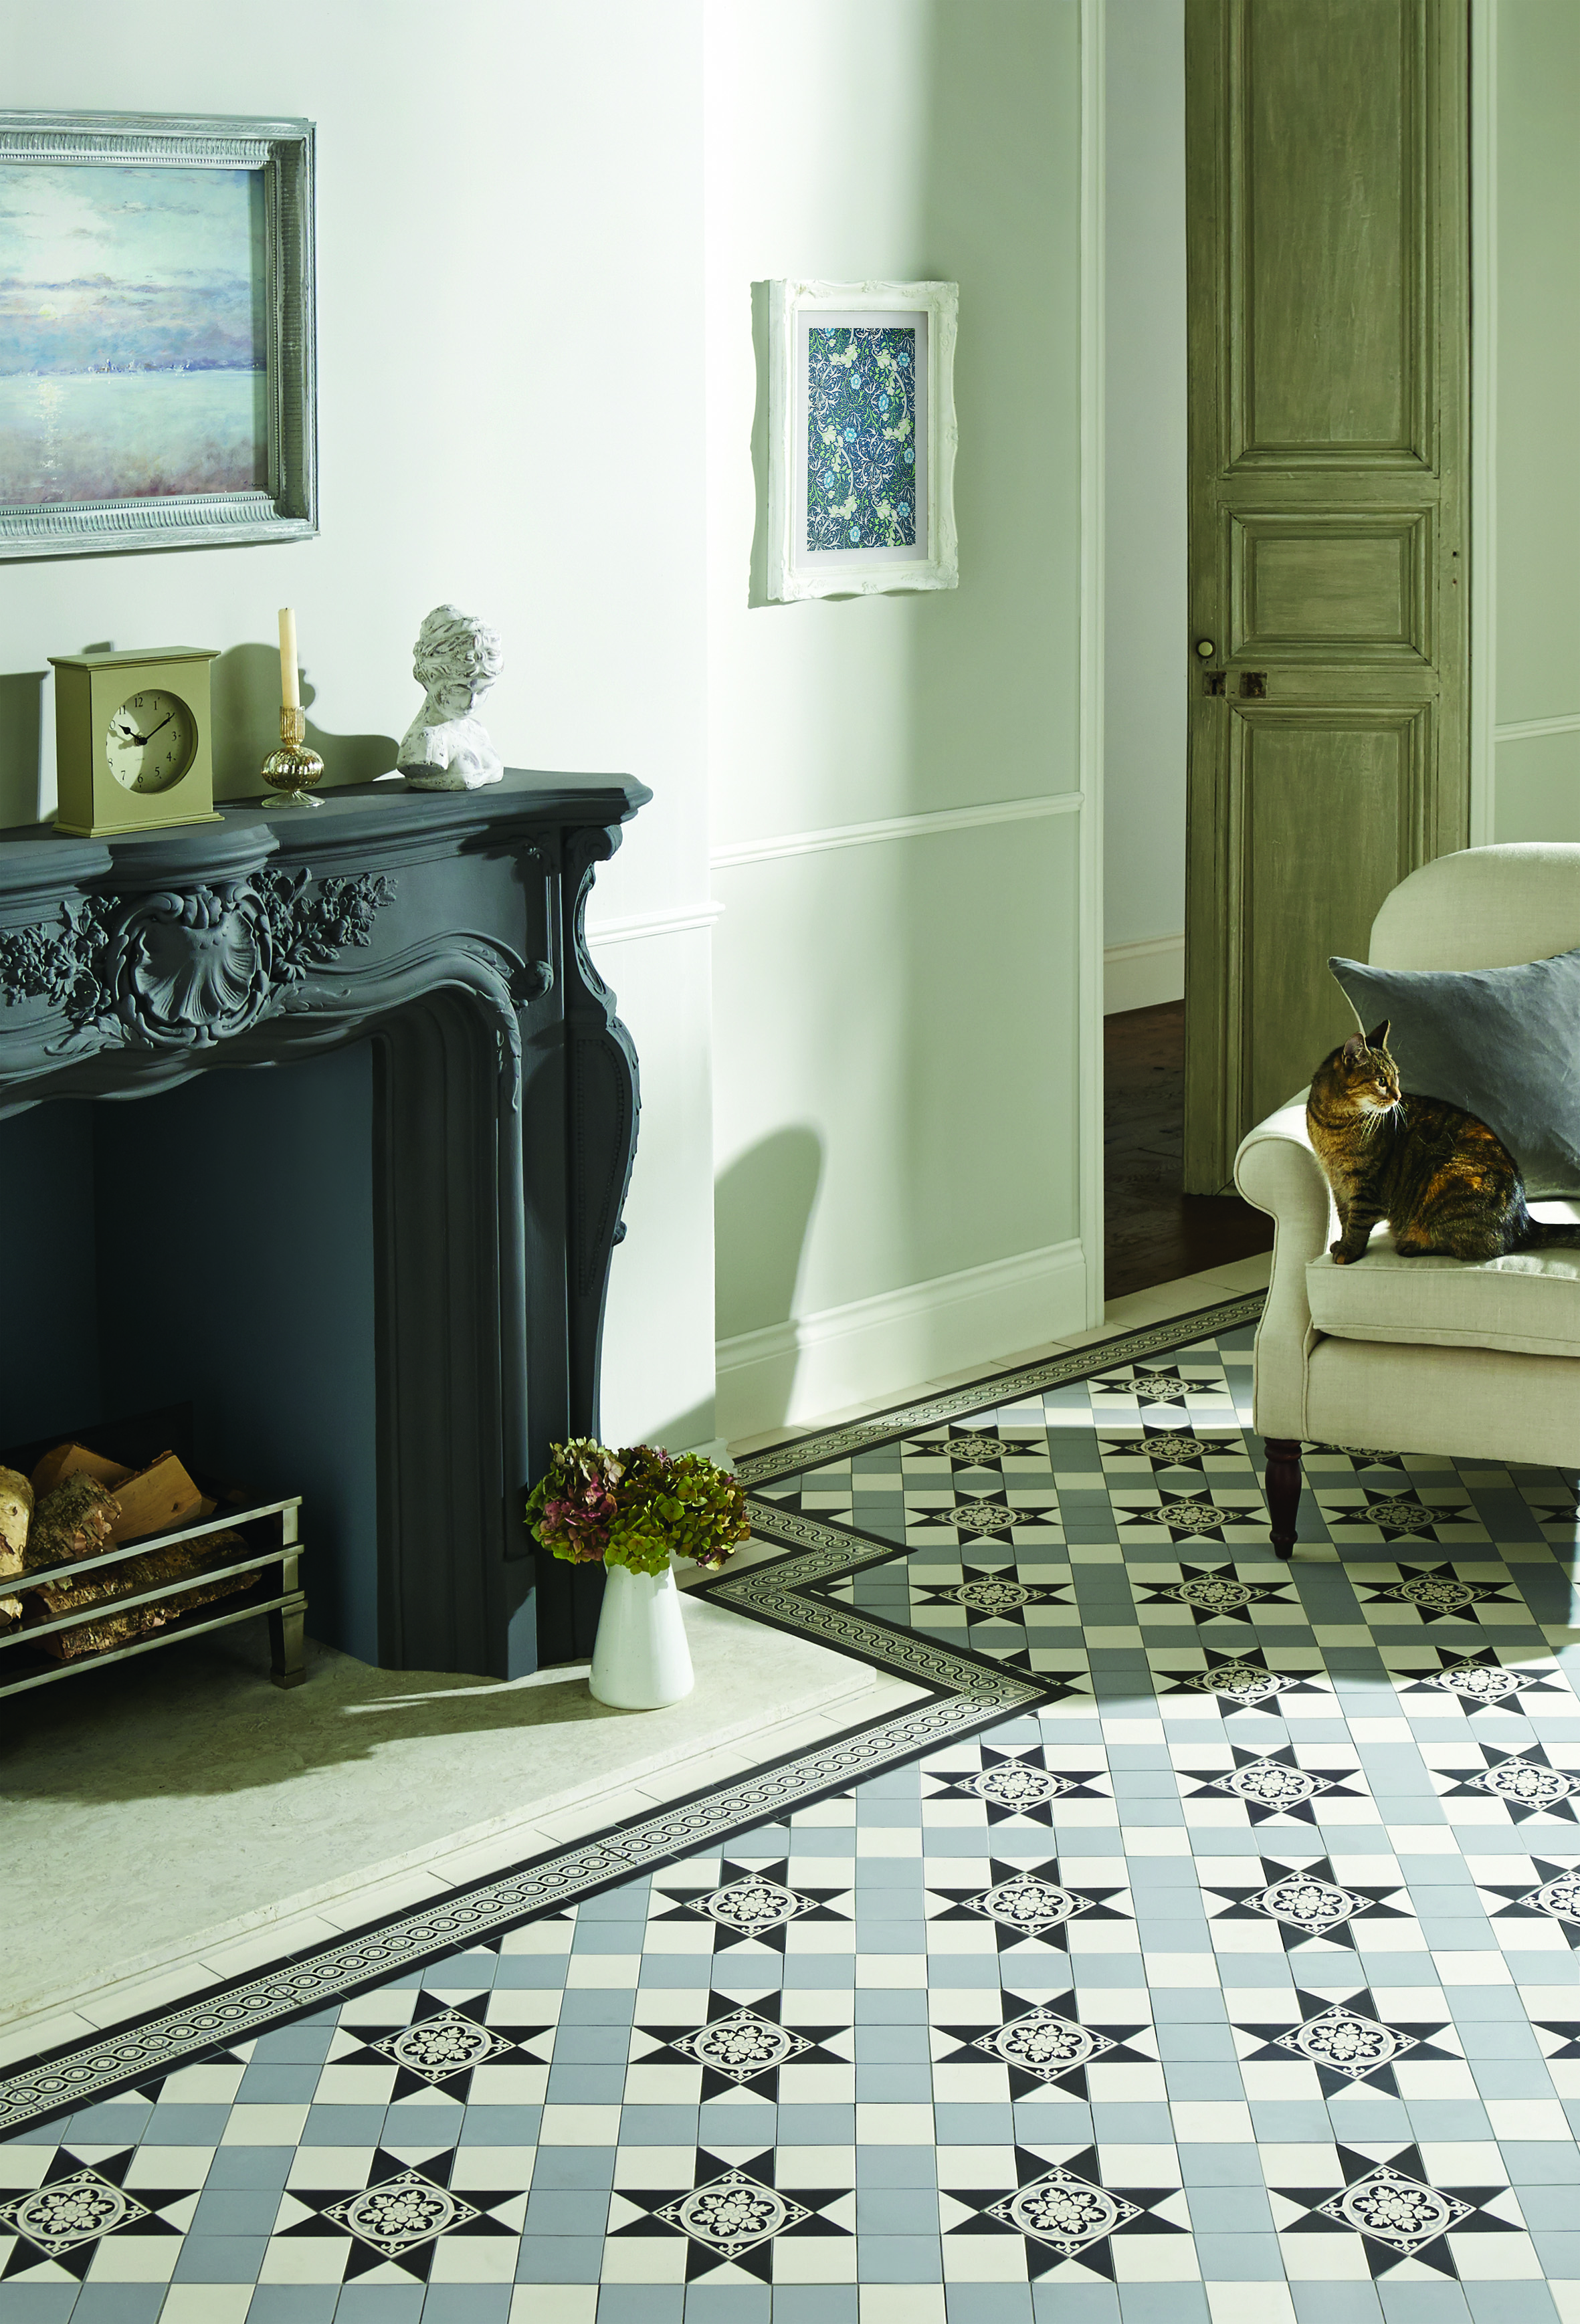 Original Style - VFT - Blenheim pattern in Black Grey and Dover White with Telford border.jpg